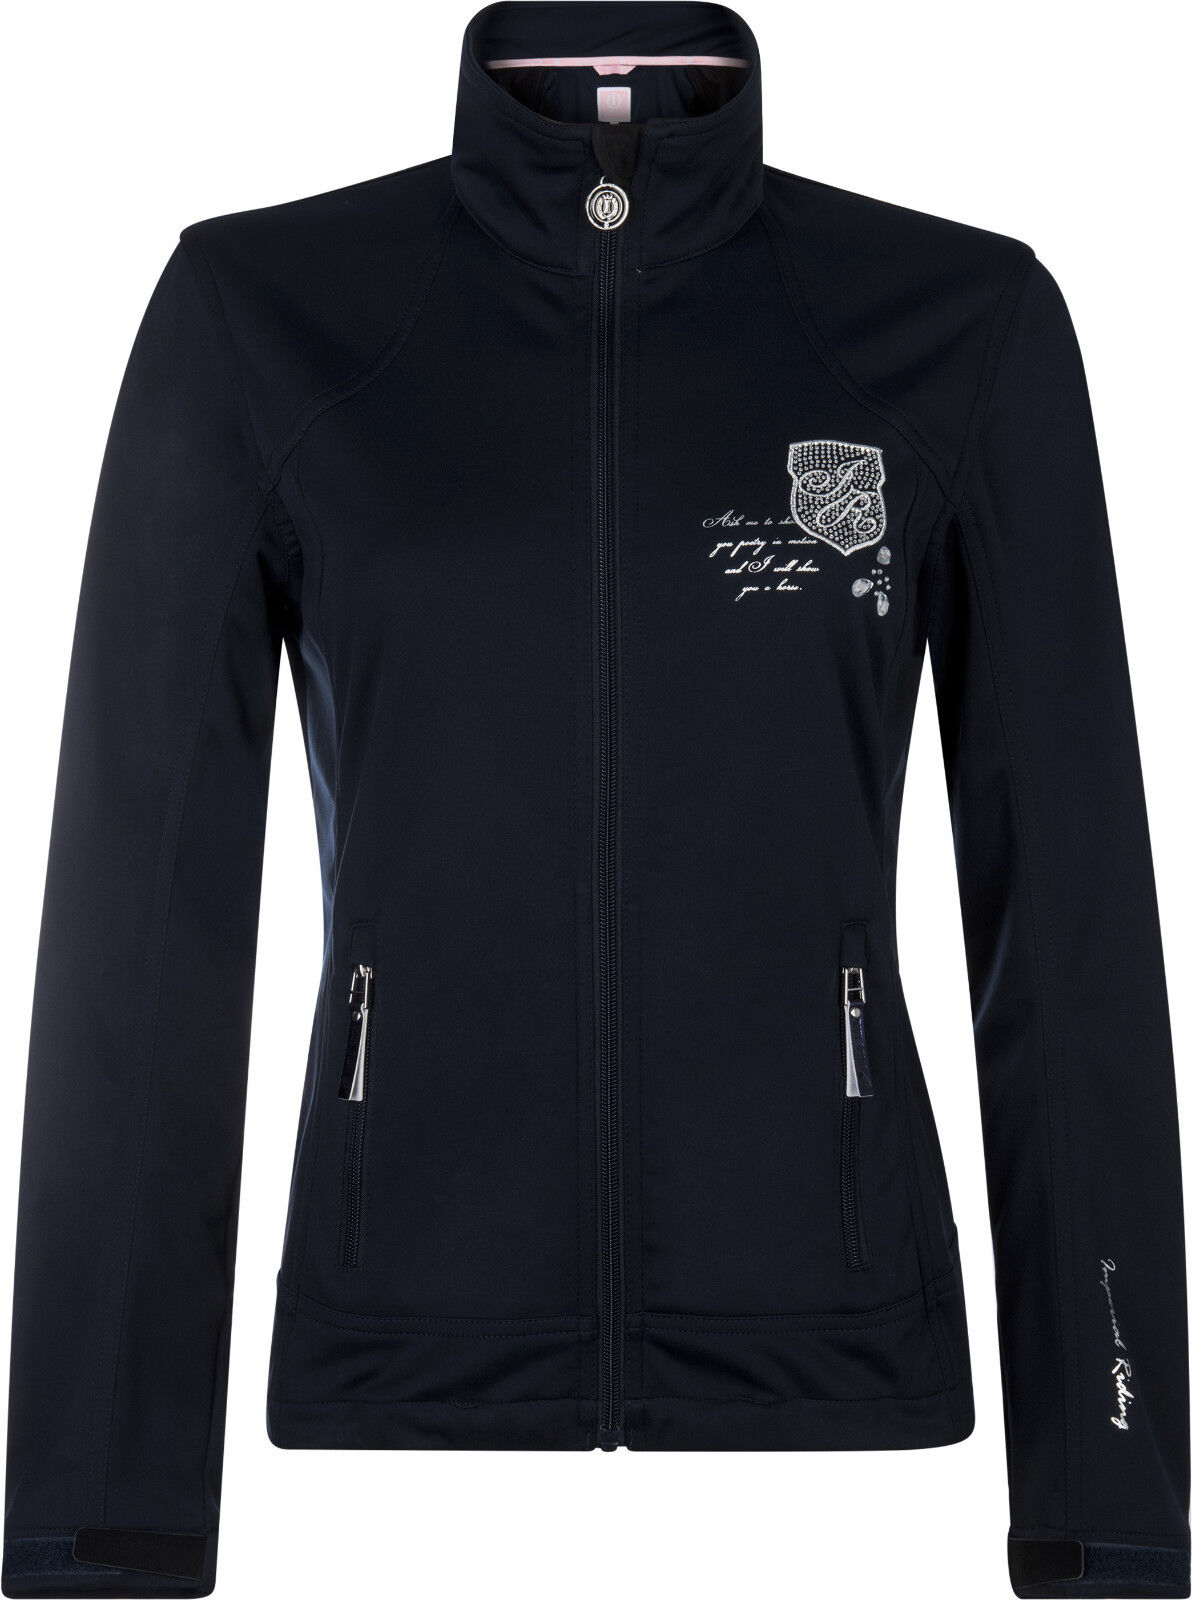 Imperial Riding Softshell-chaqueta Oracle Navy xs-xl bordados pedrería Prints